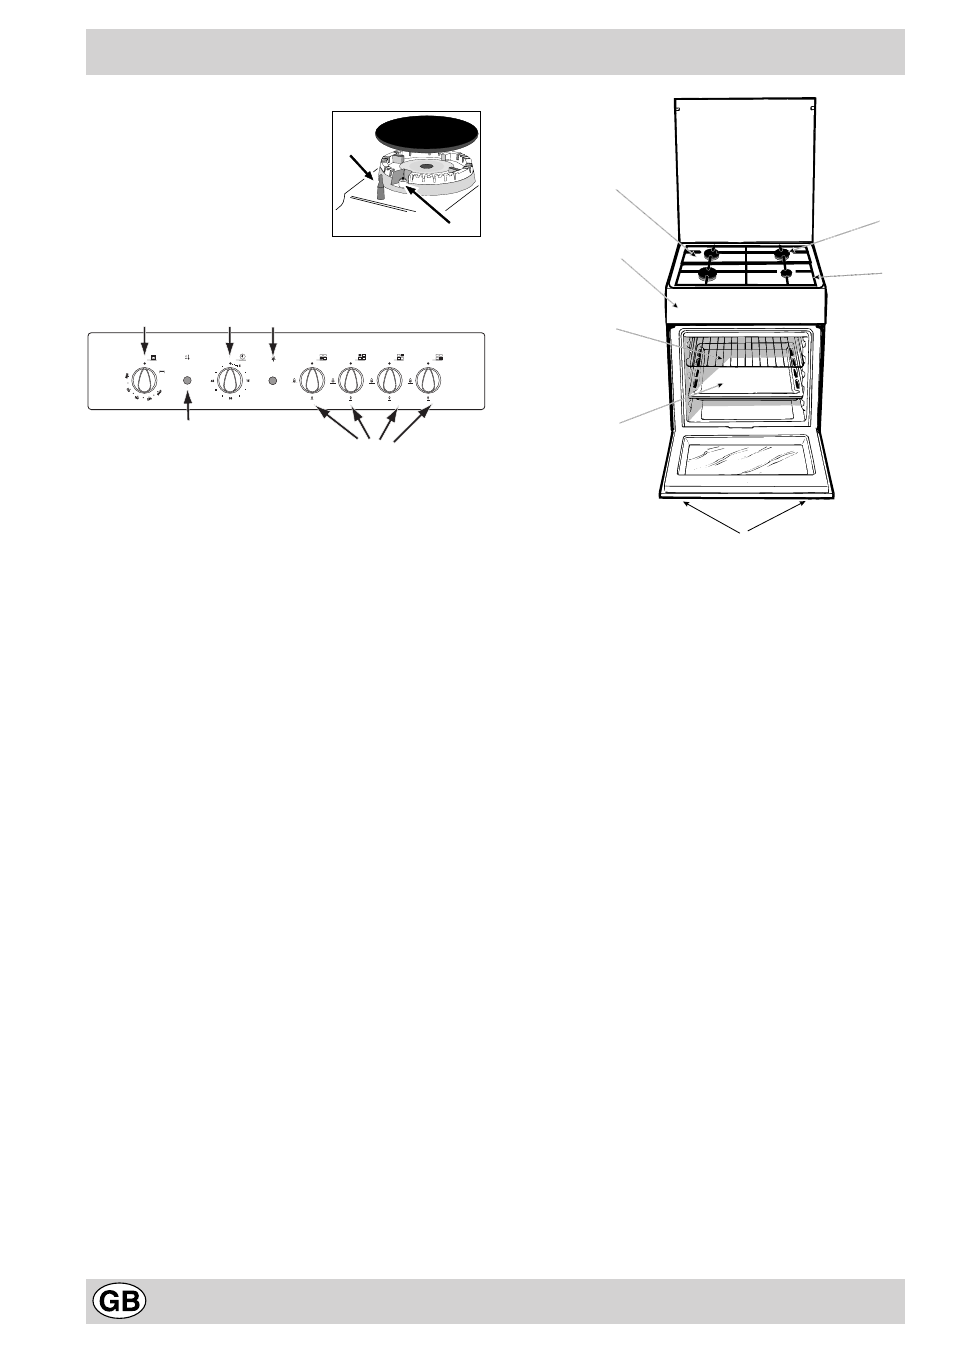 Indesit Gas Range Oven Manual Rsoftapps Hard Wiring Zsi Along With Bosch Microwave Ovens The Cooker And Grill K6g21s R User